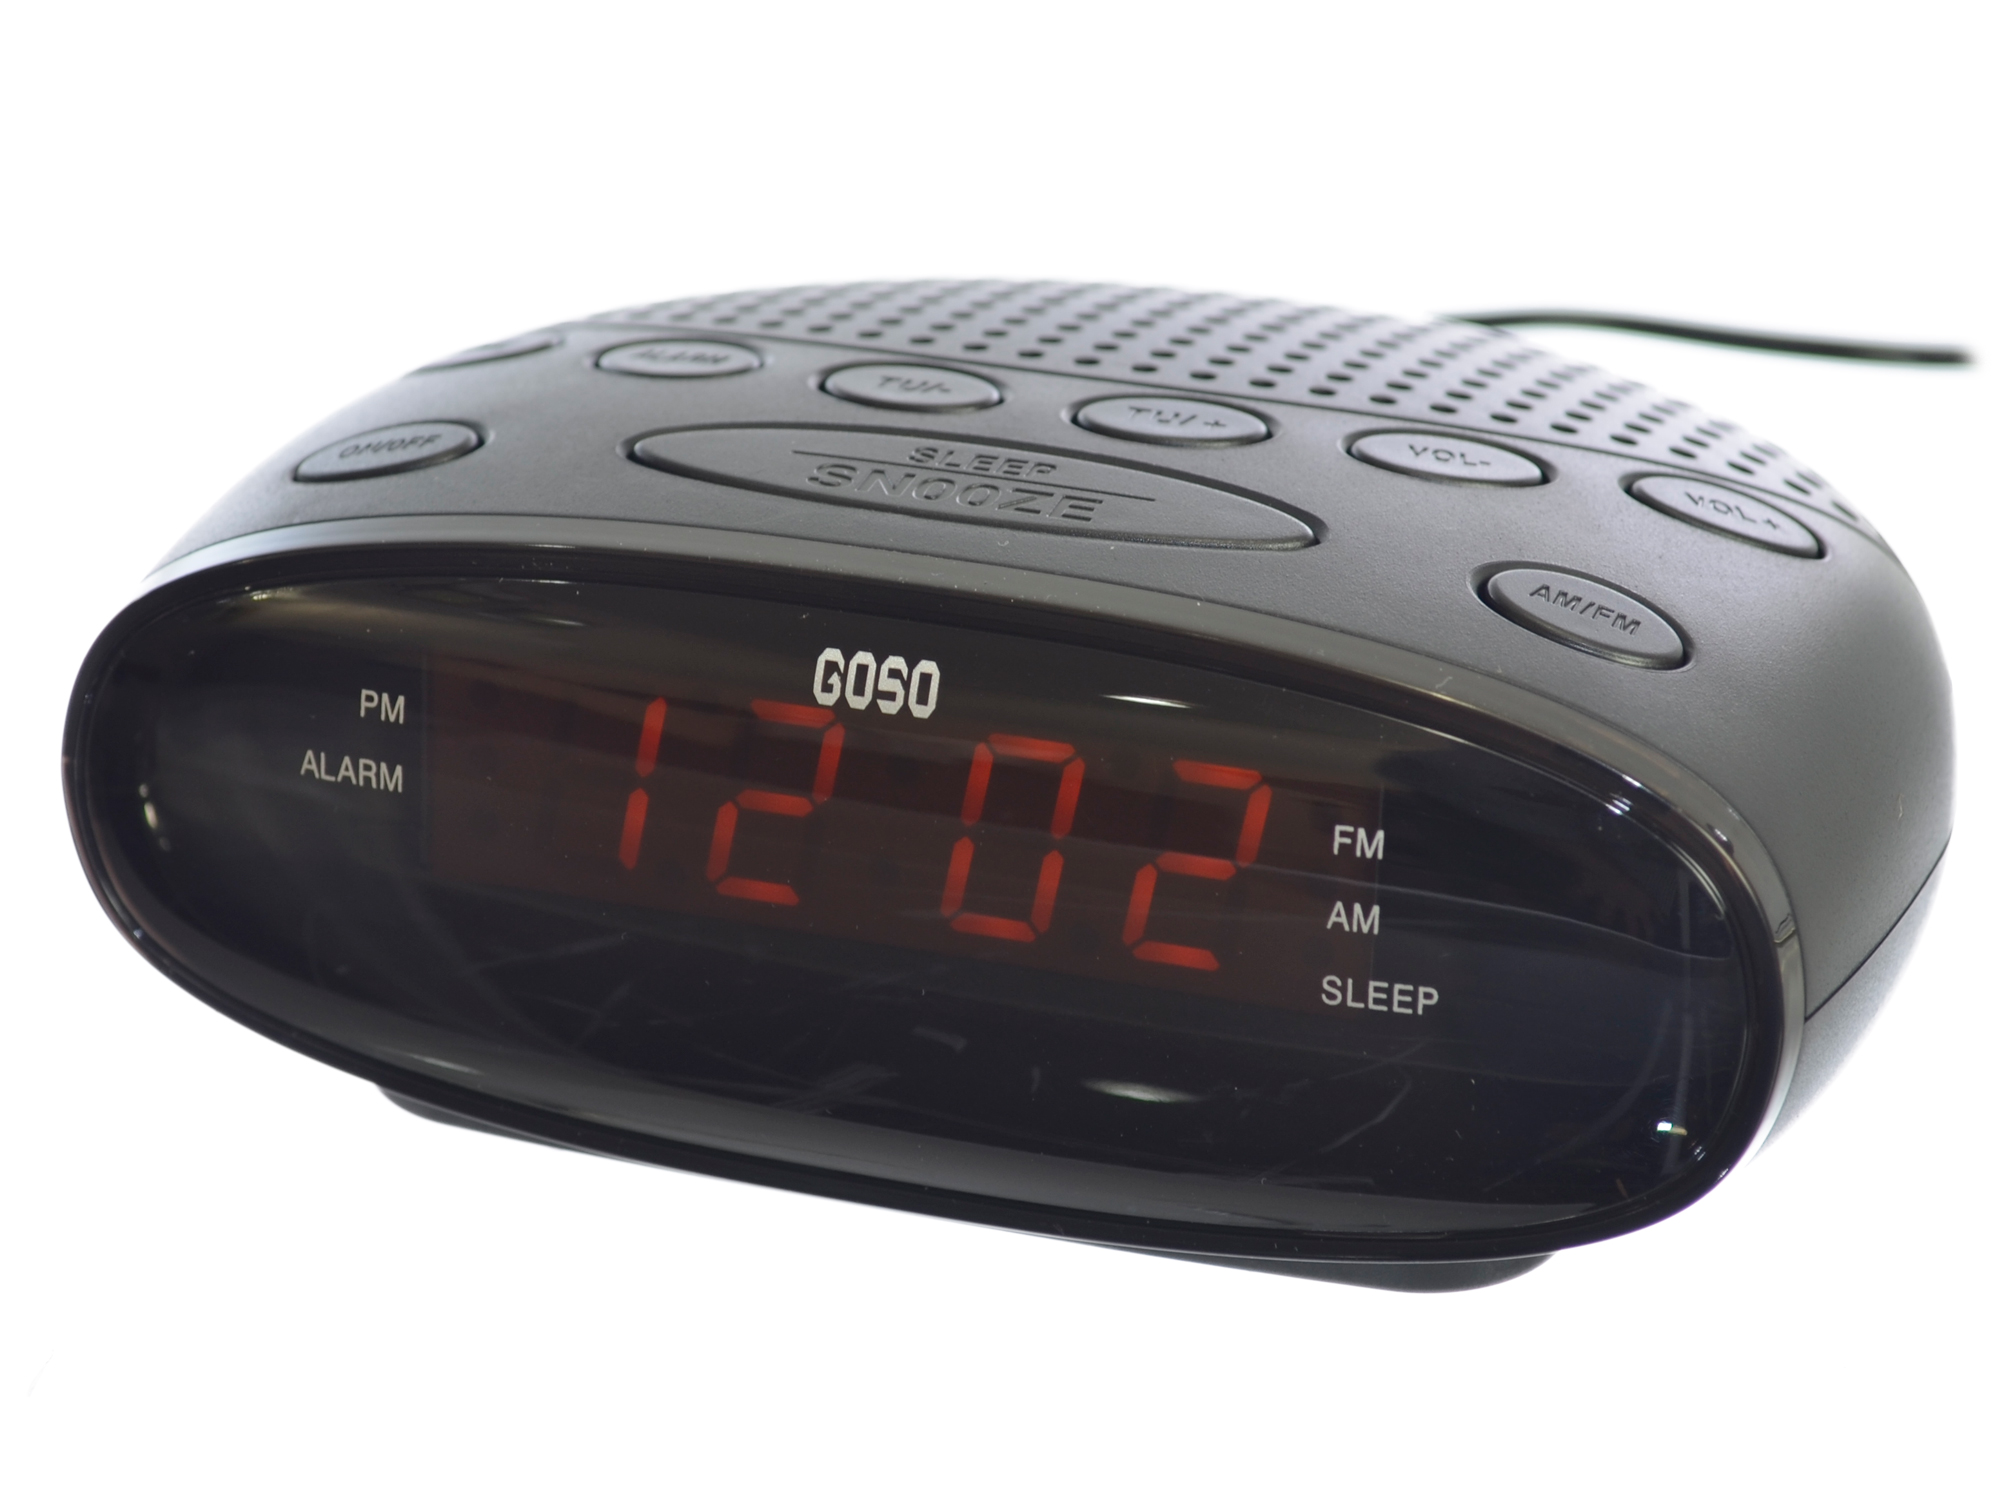 GOSO Digital Alarm Clock Radio with LED Display Digital AM FM Tuner Sleep Snooze by GOSO Direct